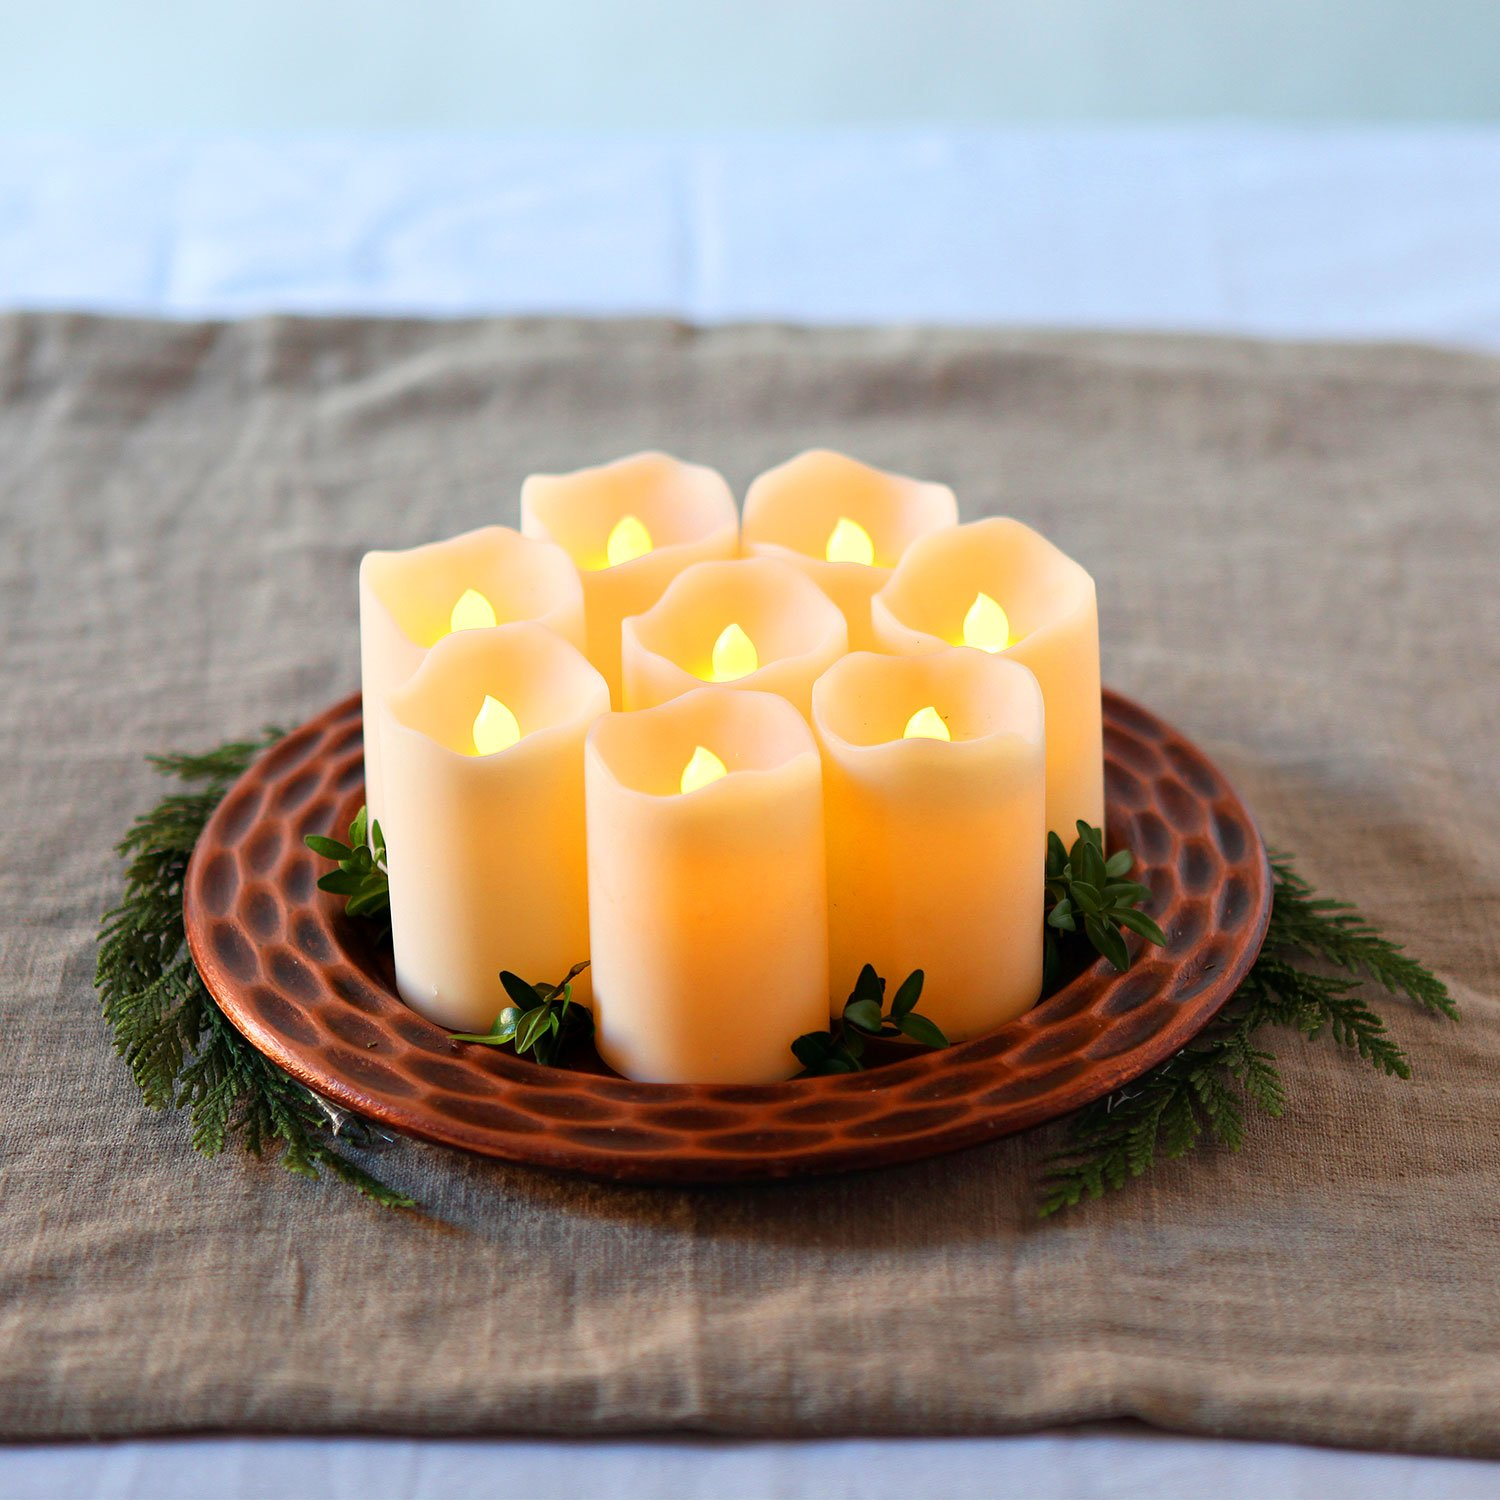 8 Ivory 3'' Flameless Votives with Warm White LEDs, Mini Wax Candles, Melted Edge, Batteries Included by LampLust (Image #7)